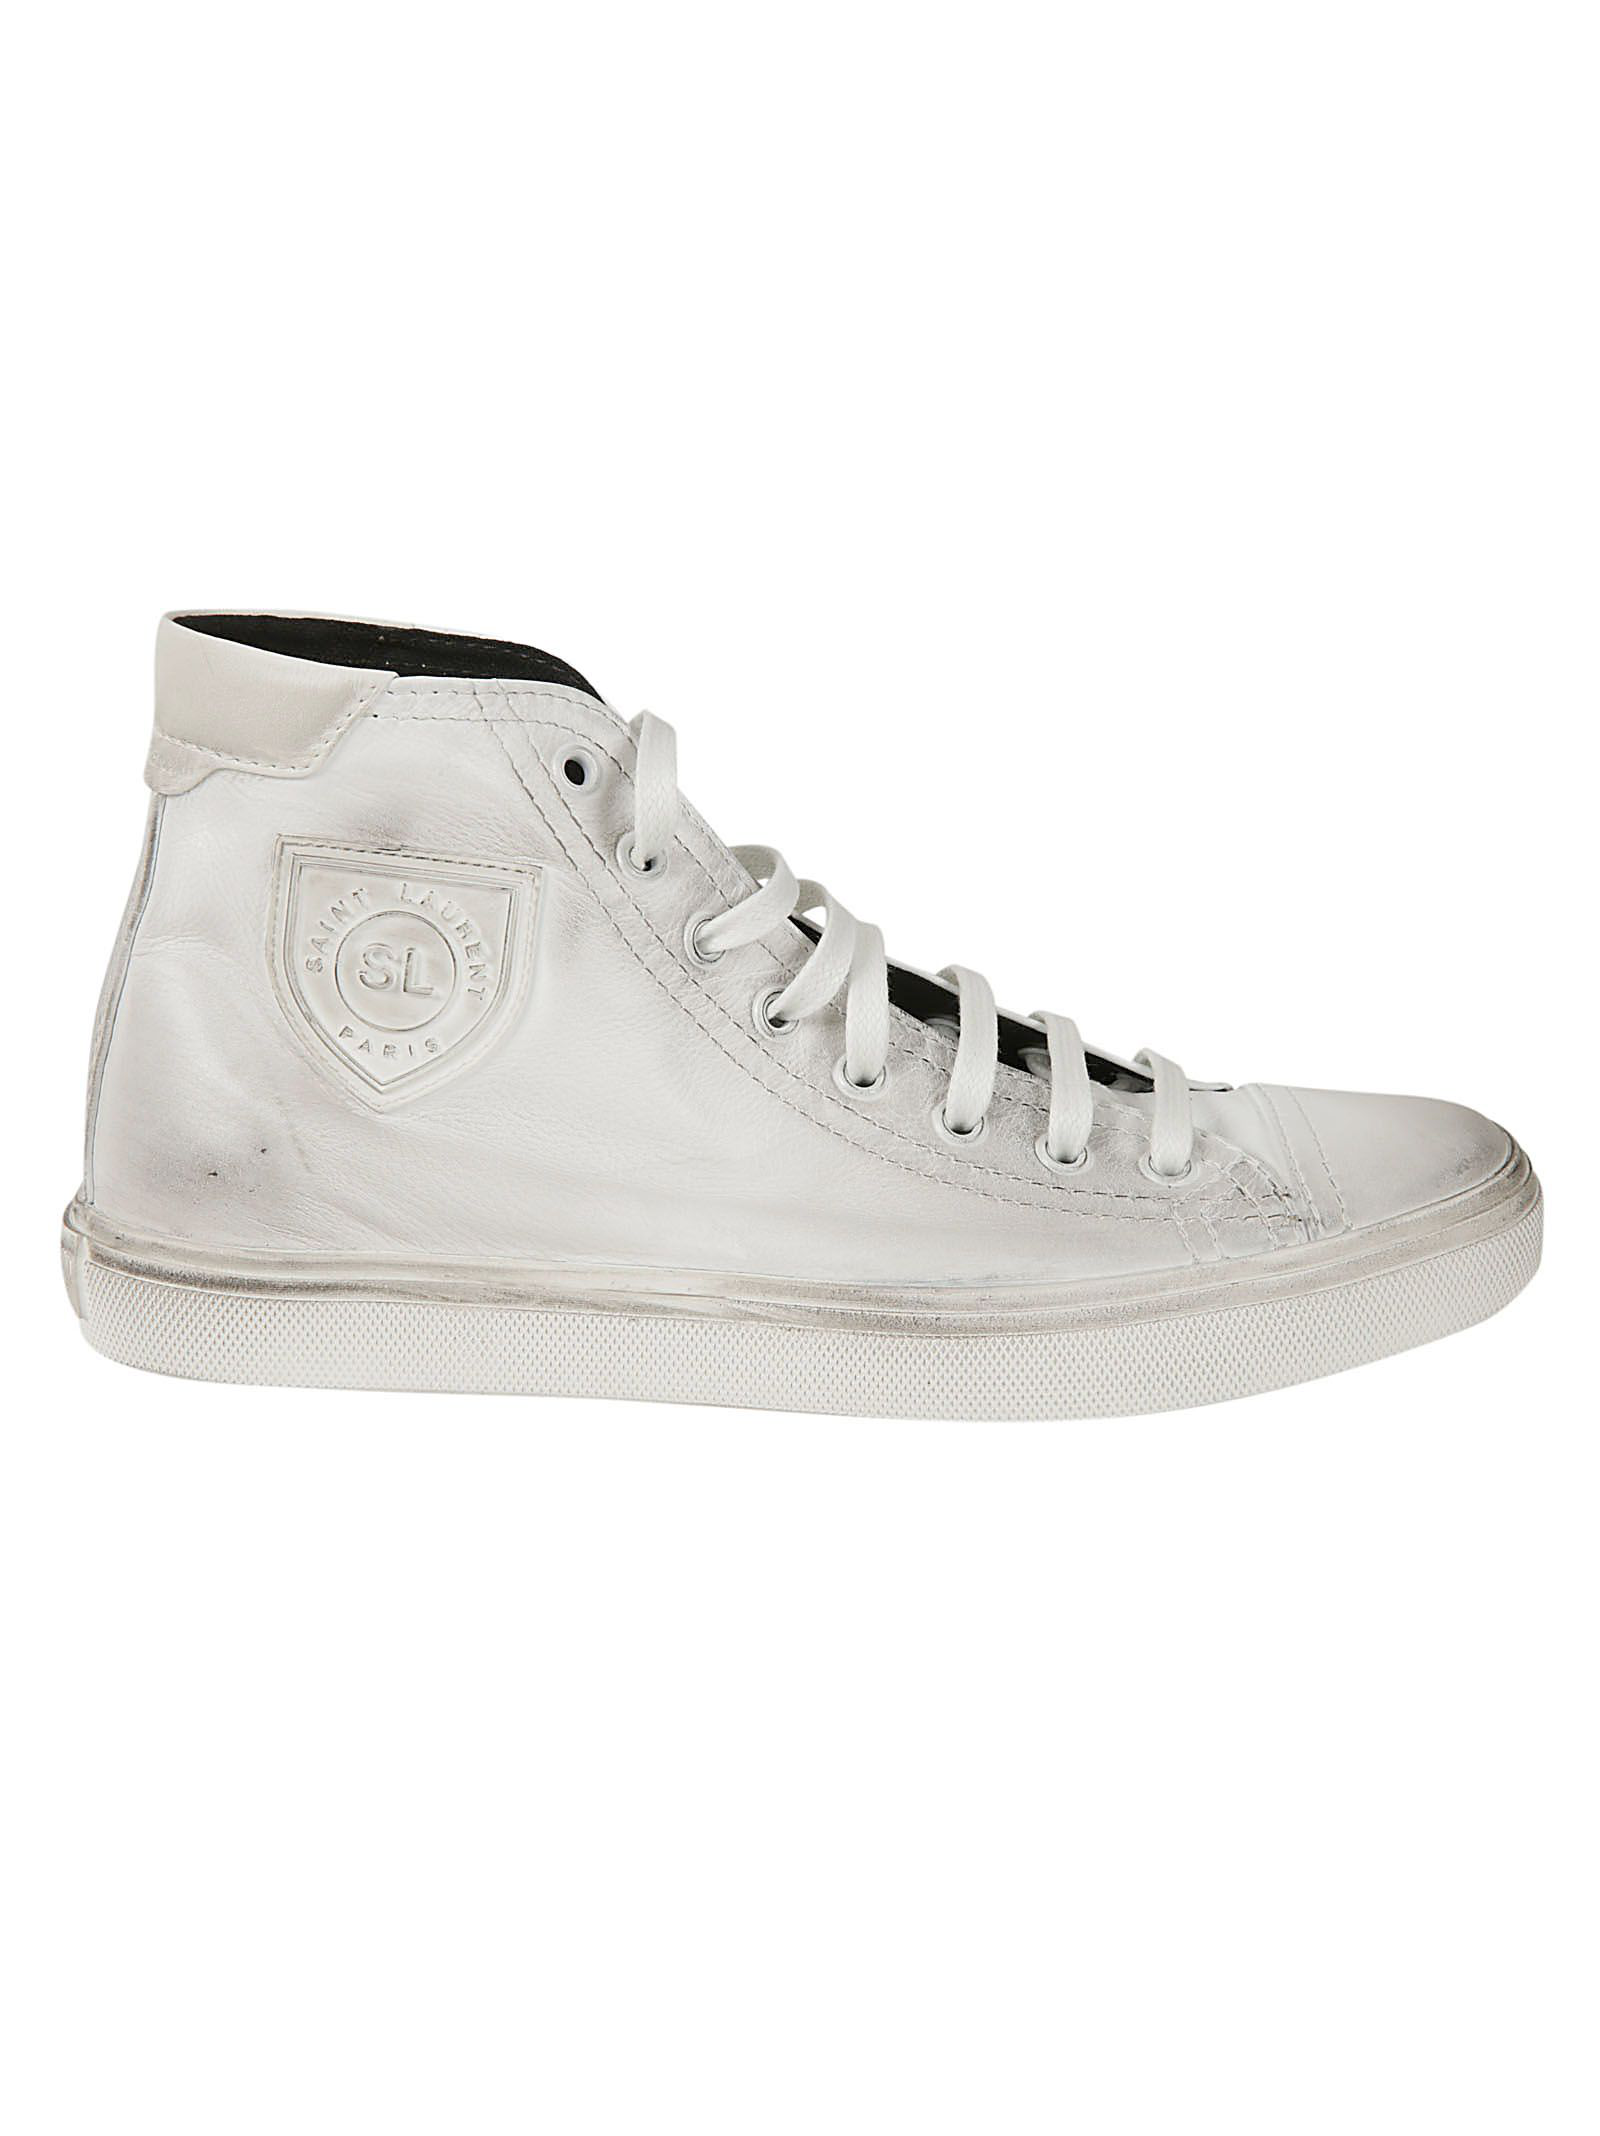 331546caf45 Saint Laurent Bedford Logo-Appliqued Distressed Leather High-Top Sneakers  In White